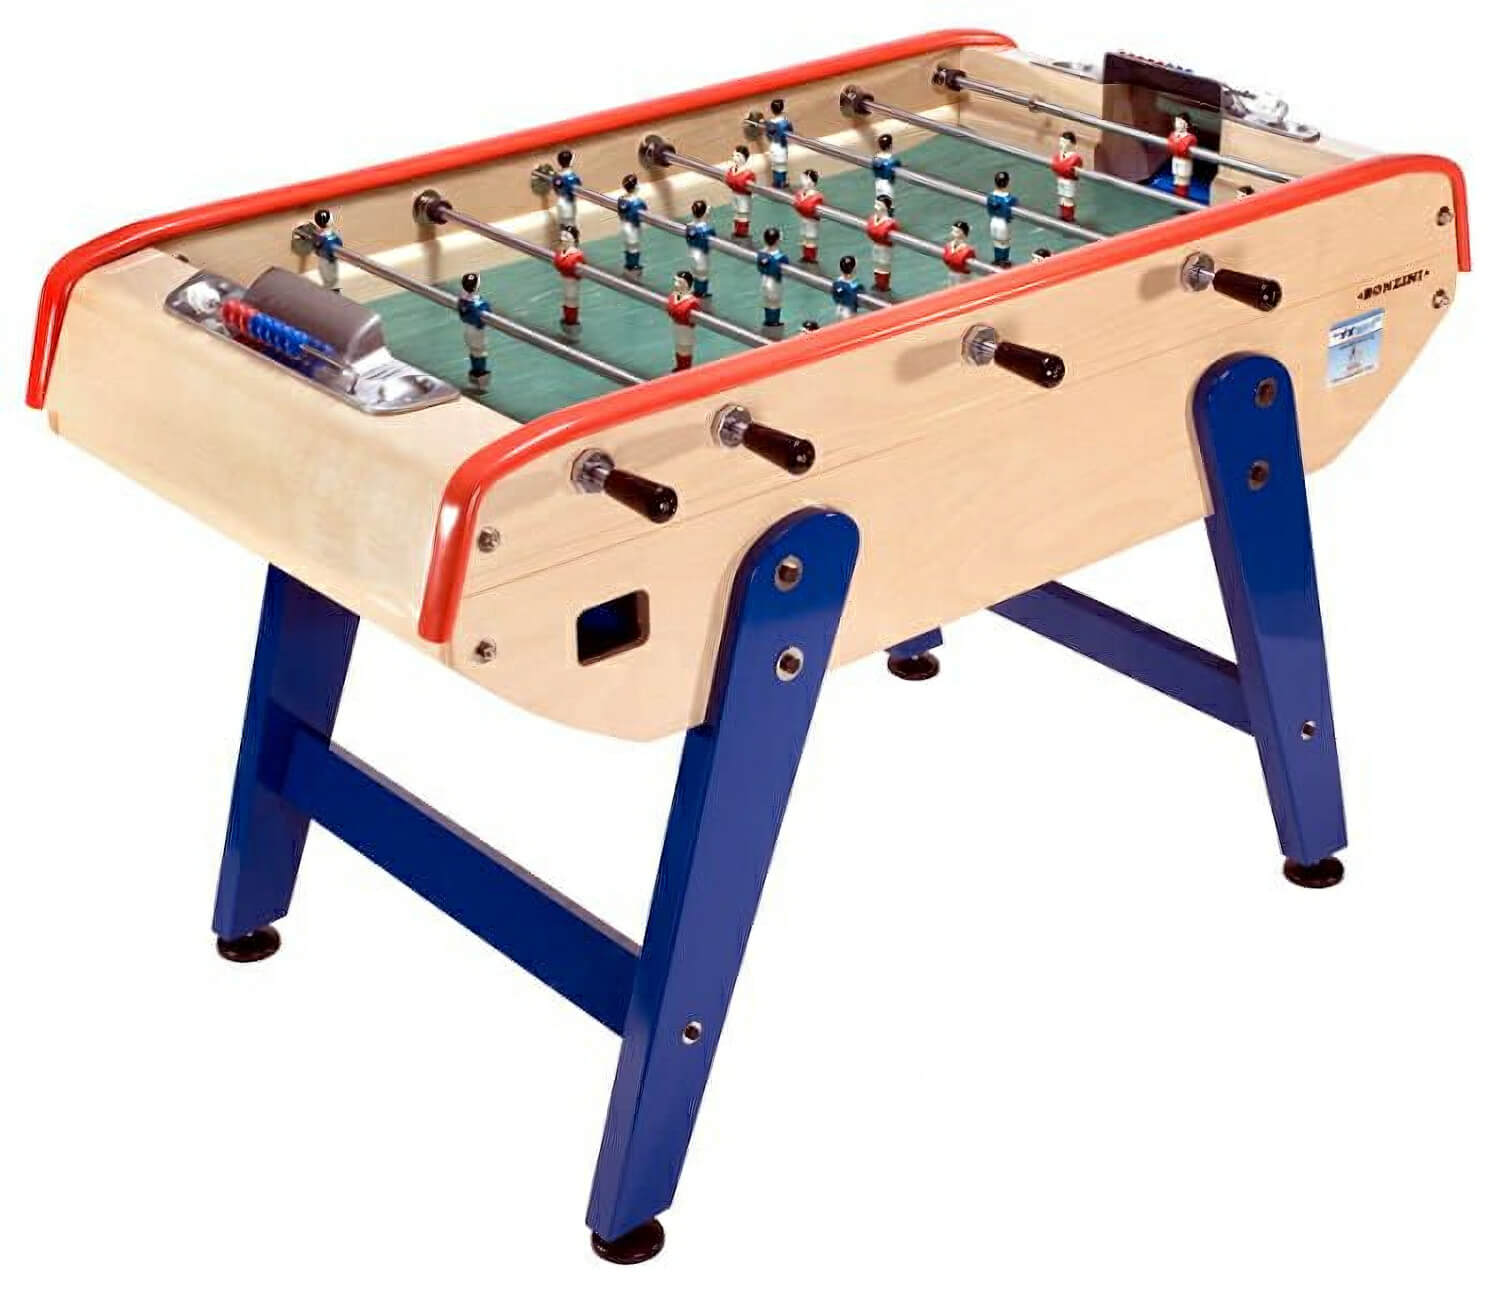 Bonzini b90 itsf competition football table liberty games - Table baby foot billard ...